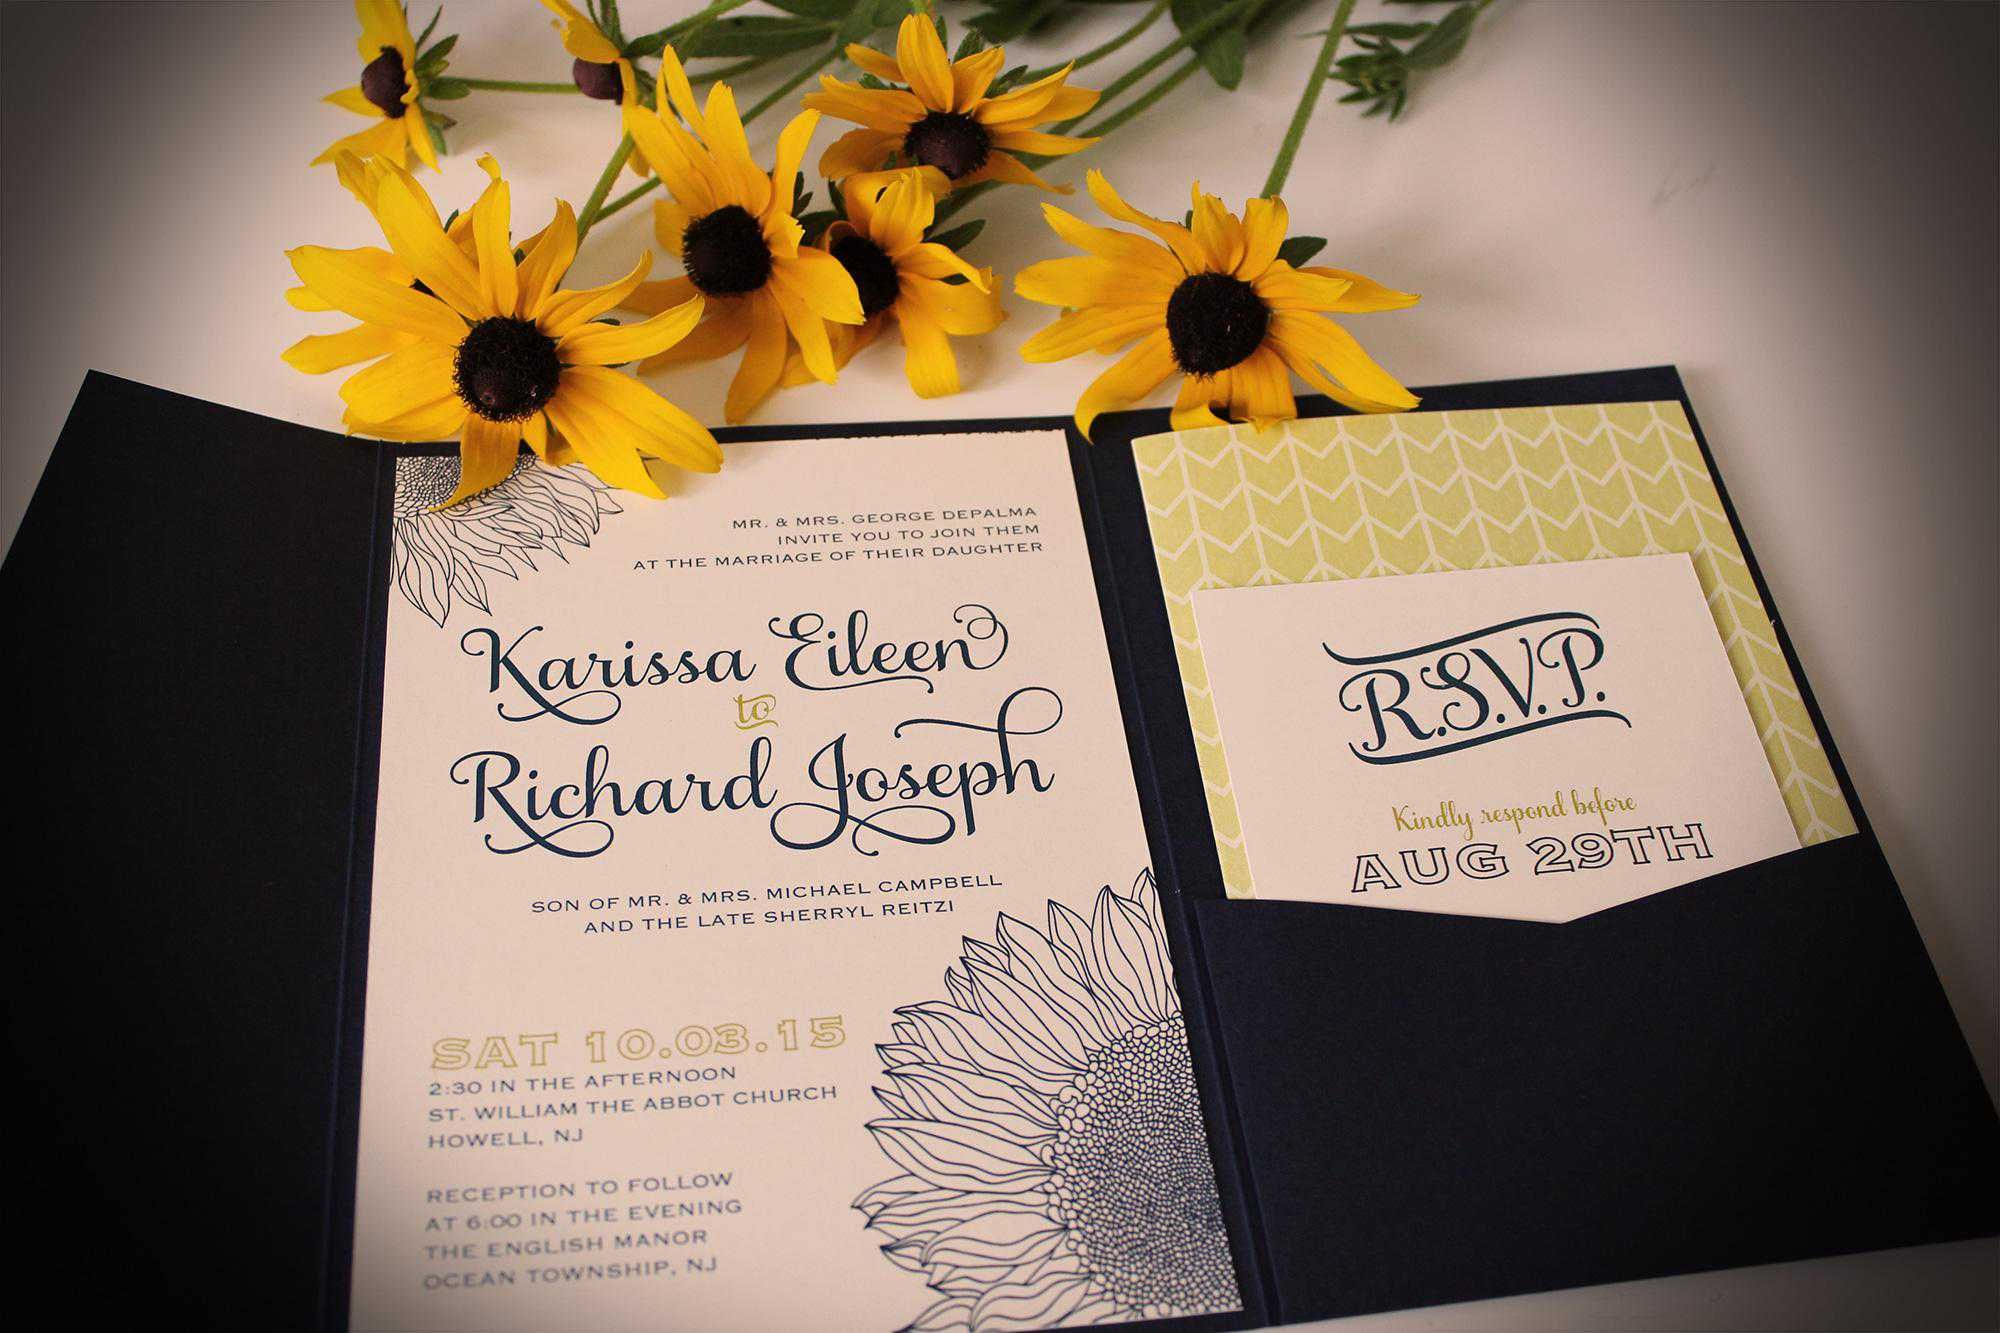 How To Create Vistaprint Wedding Invitations Designs Charming Design For F In 2020 Sunflower Wedding Invitations Wood Wedding Invitations Printing Wedding Invitations